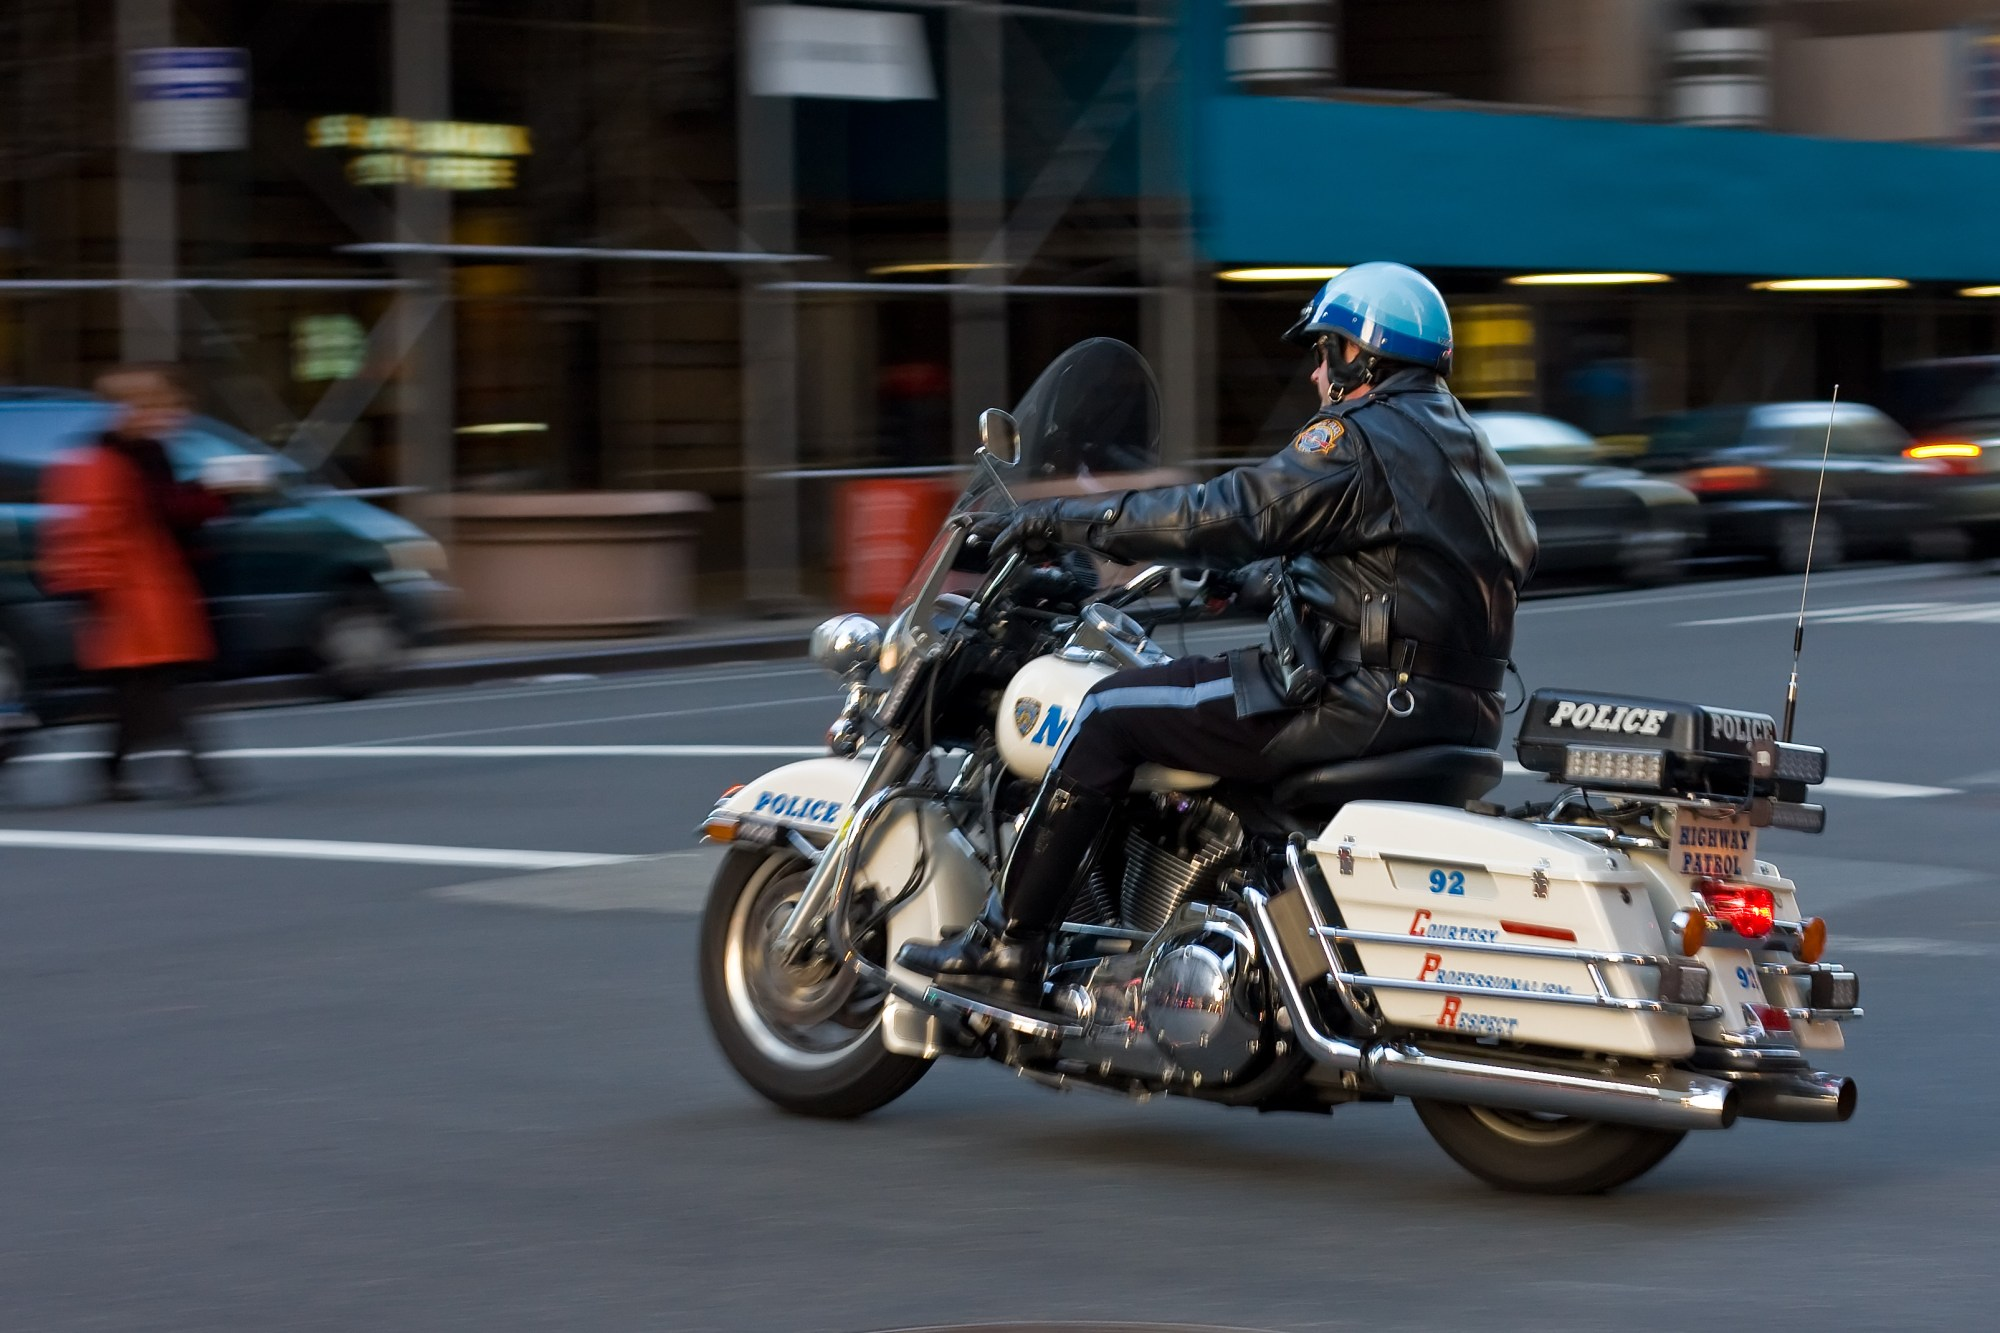 hight resolution of police motorcycle